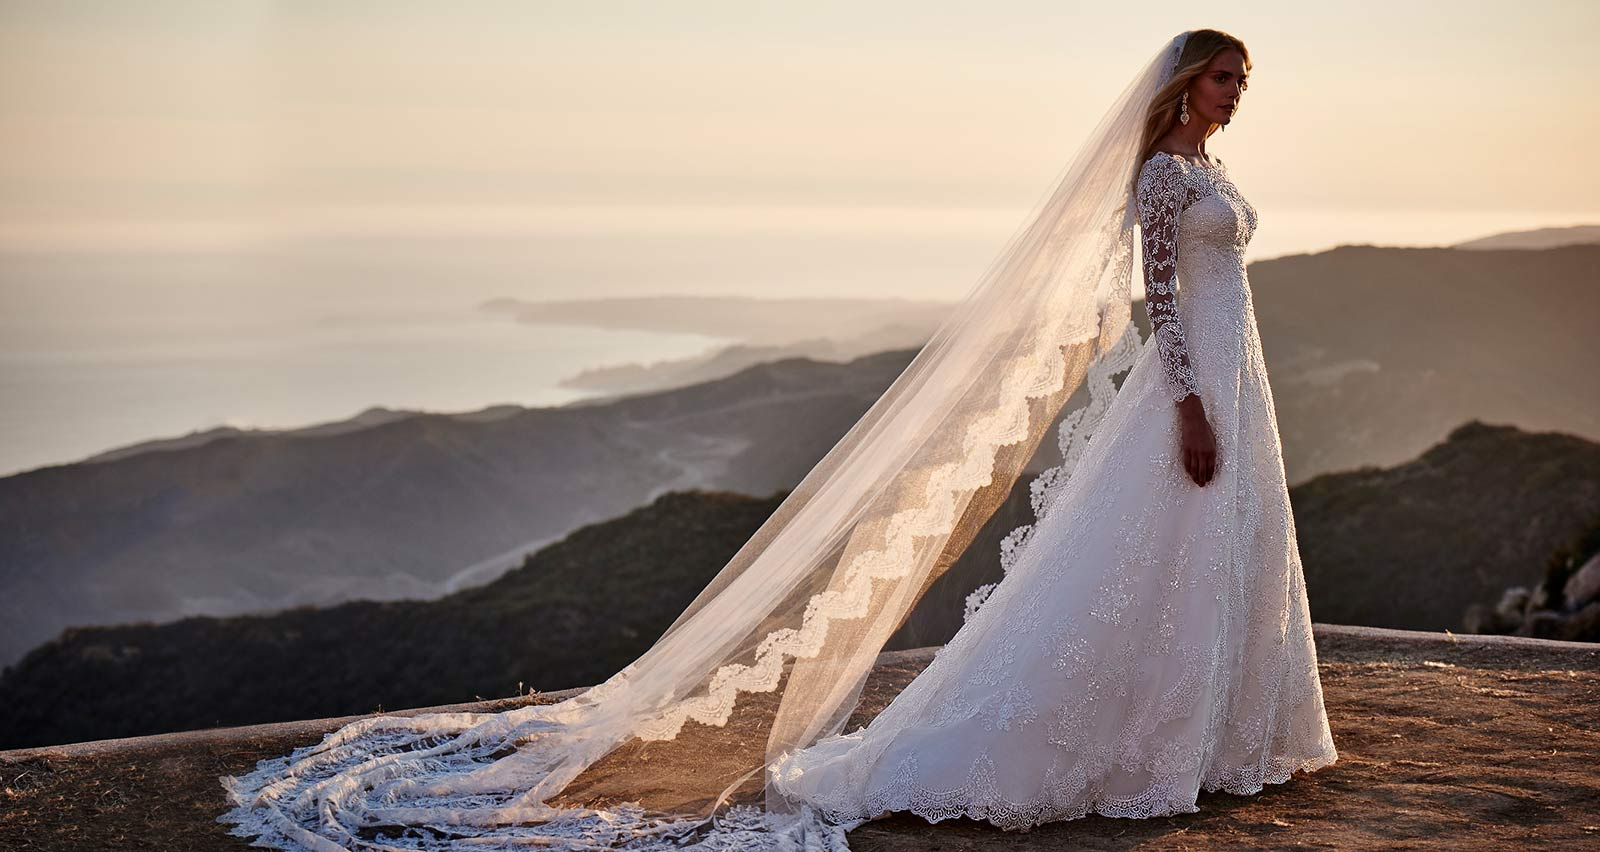 Bride wearing Oleg Cassini wedding gown with veil by the ocean cliff